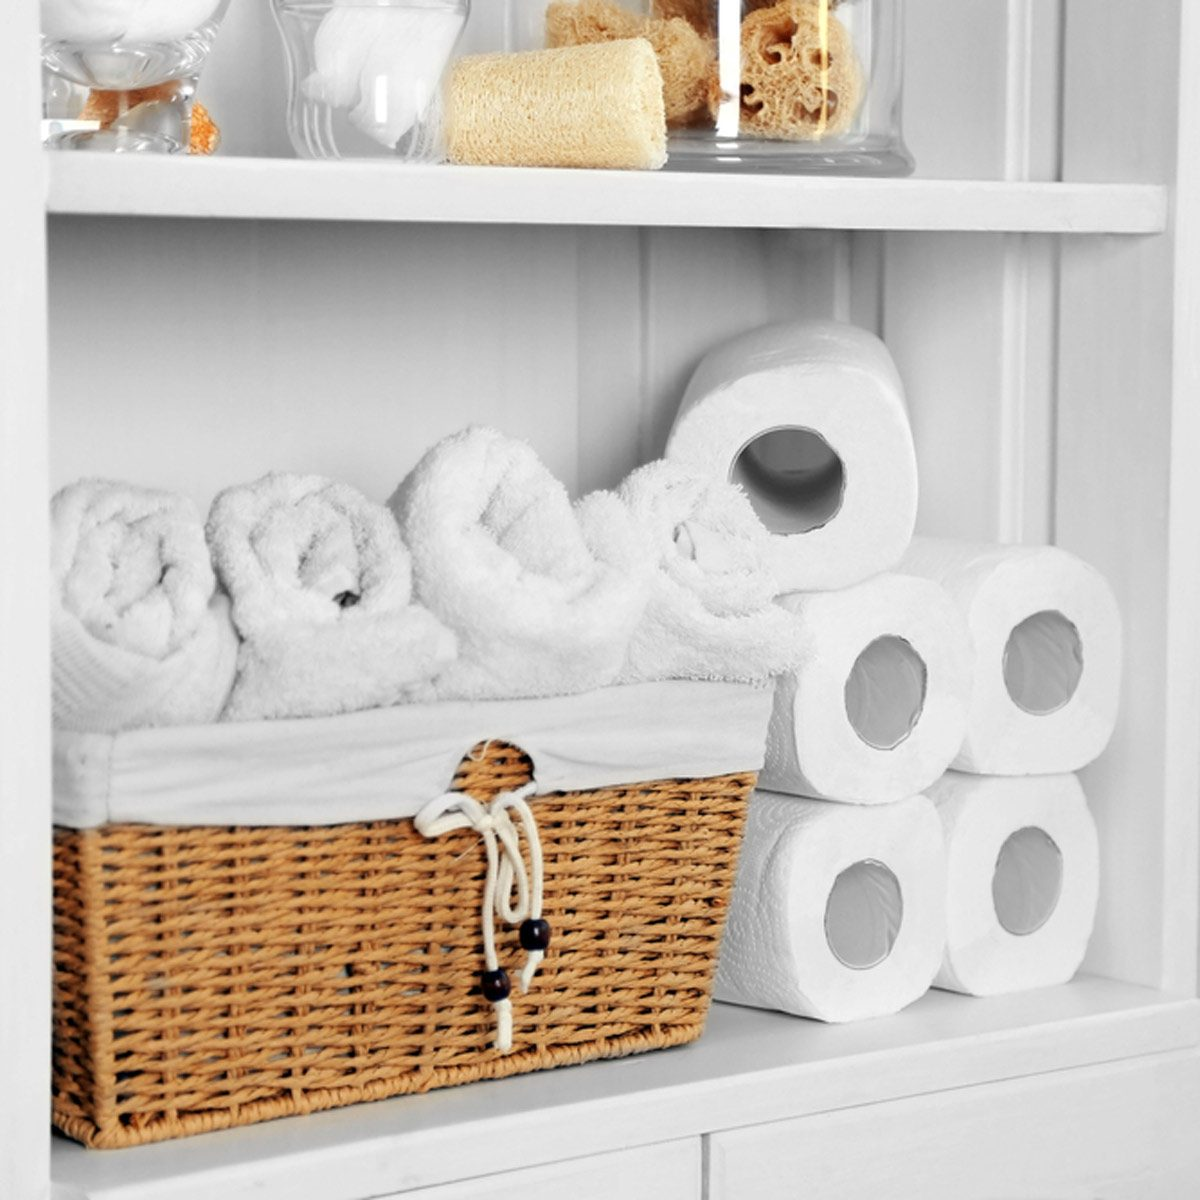 stock-bathroom_409075276 toilet paper bathroom organization towels wash clothes